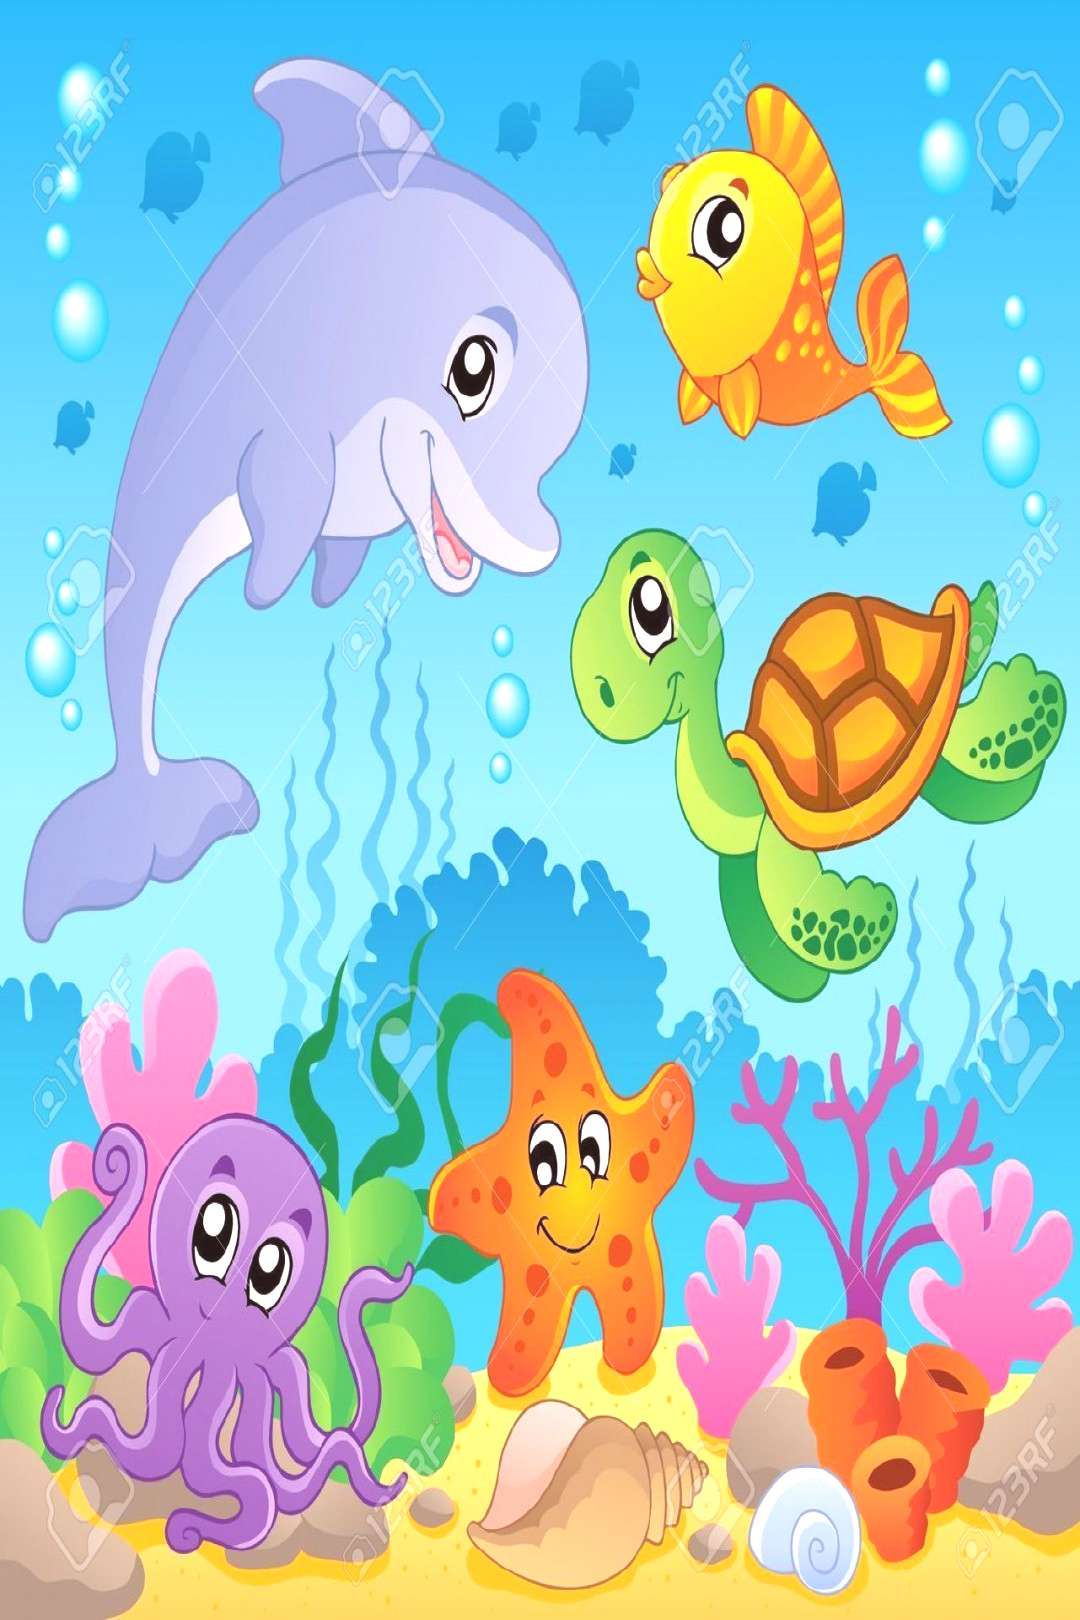 Image With Undersea Theme 2 - Vector Illustration Royalty Free Cliparts, Vectors, And Stock Illustr